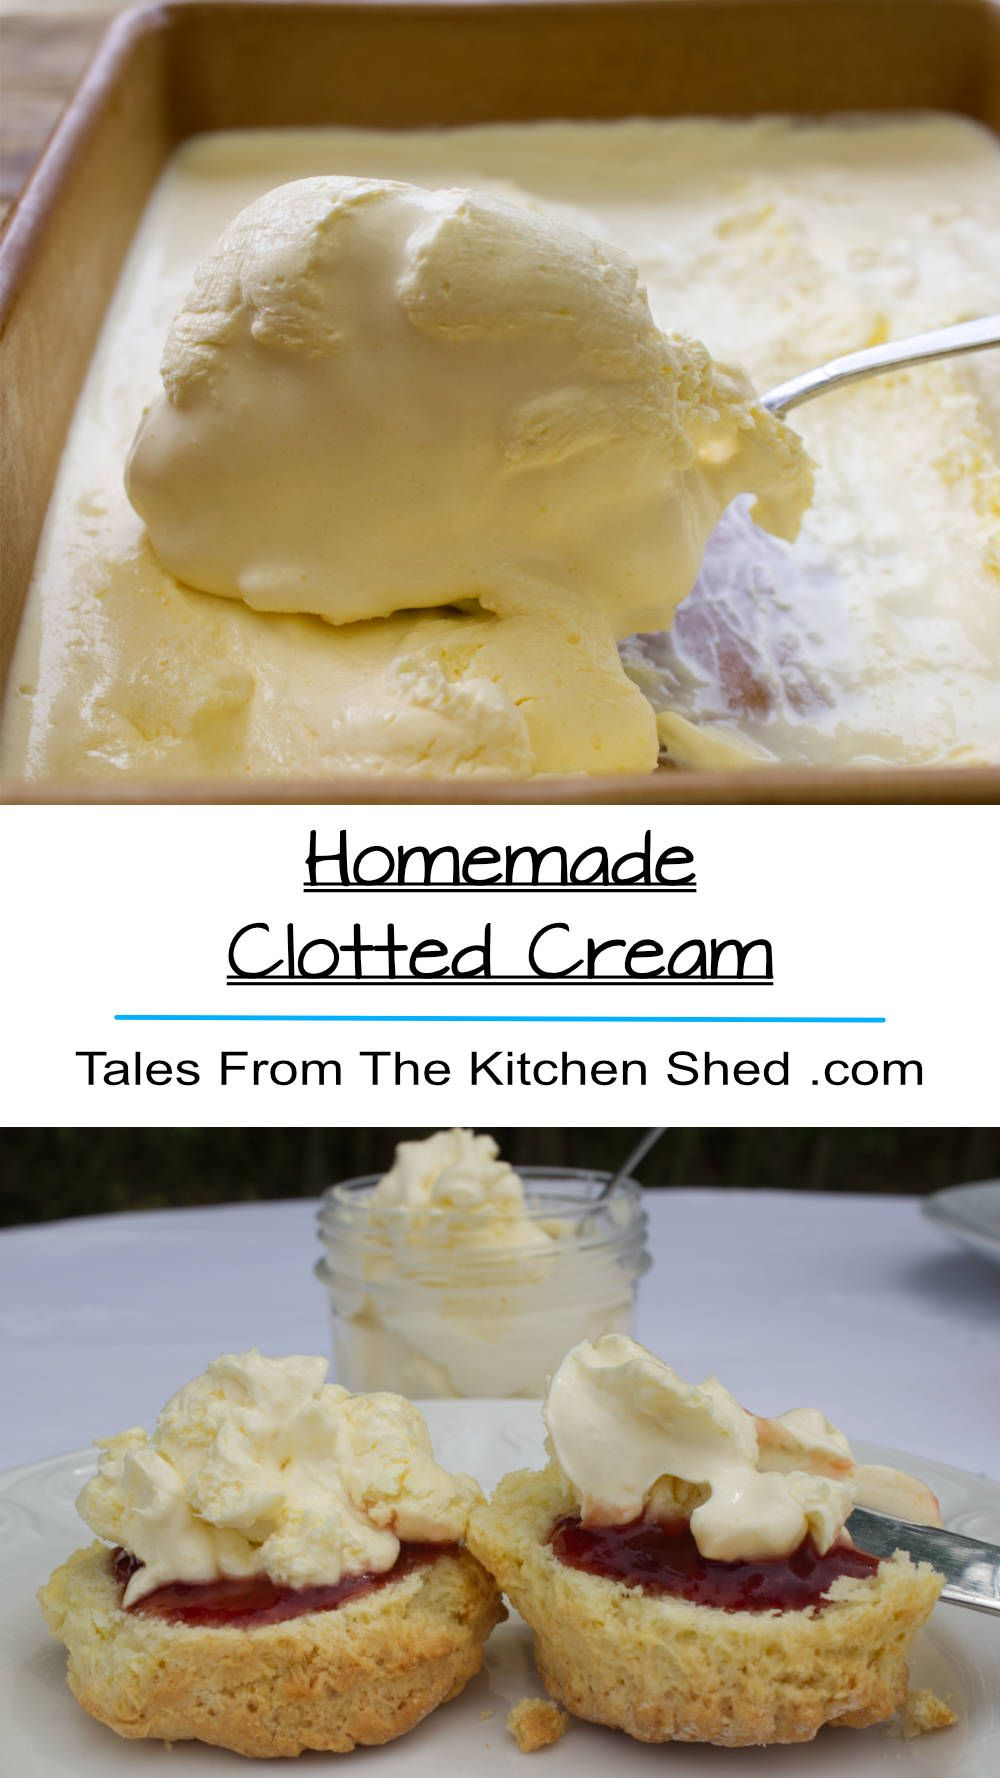 Homemade Clotted Cream Recipe Easy Gluten Free Desserts Food Baking Recipes